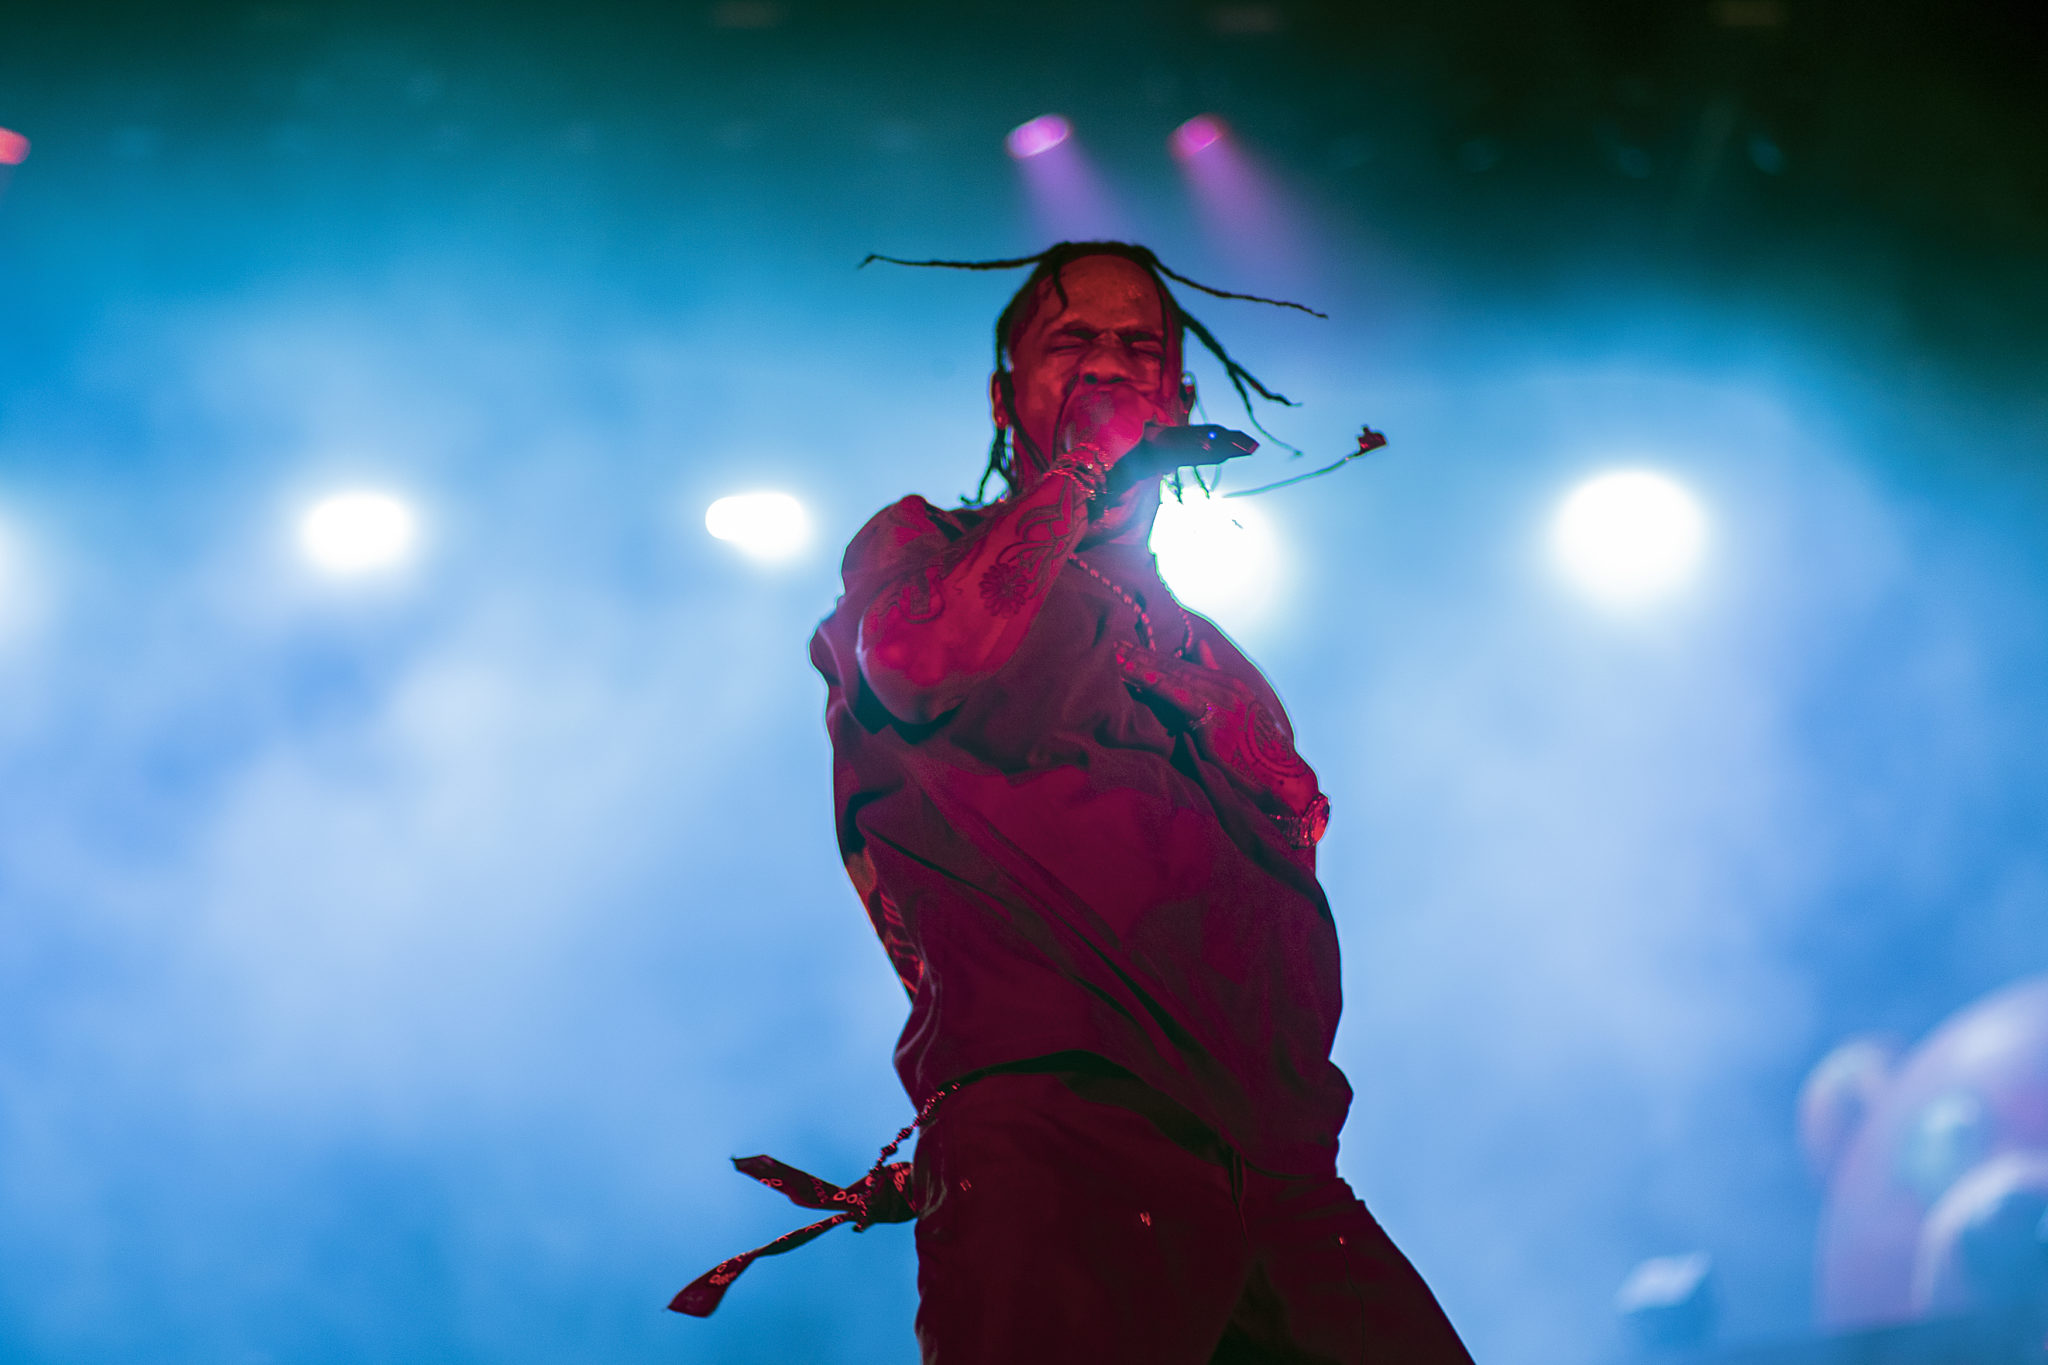 Travis Scott 9.15.2019 Photo by Terence Rushin for Music Midtown E5A9150 1